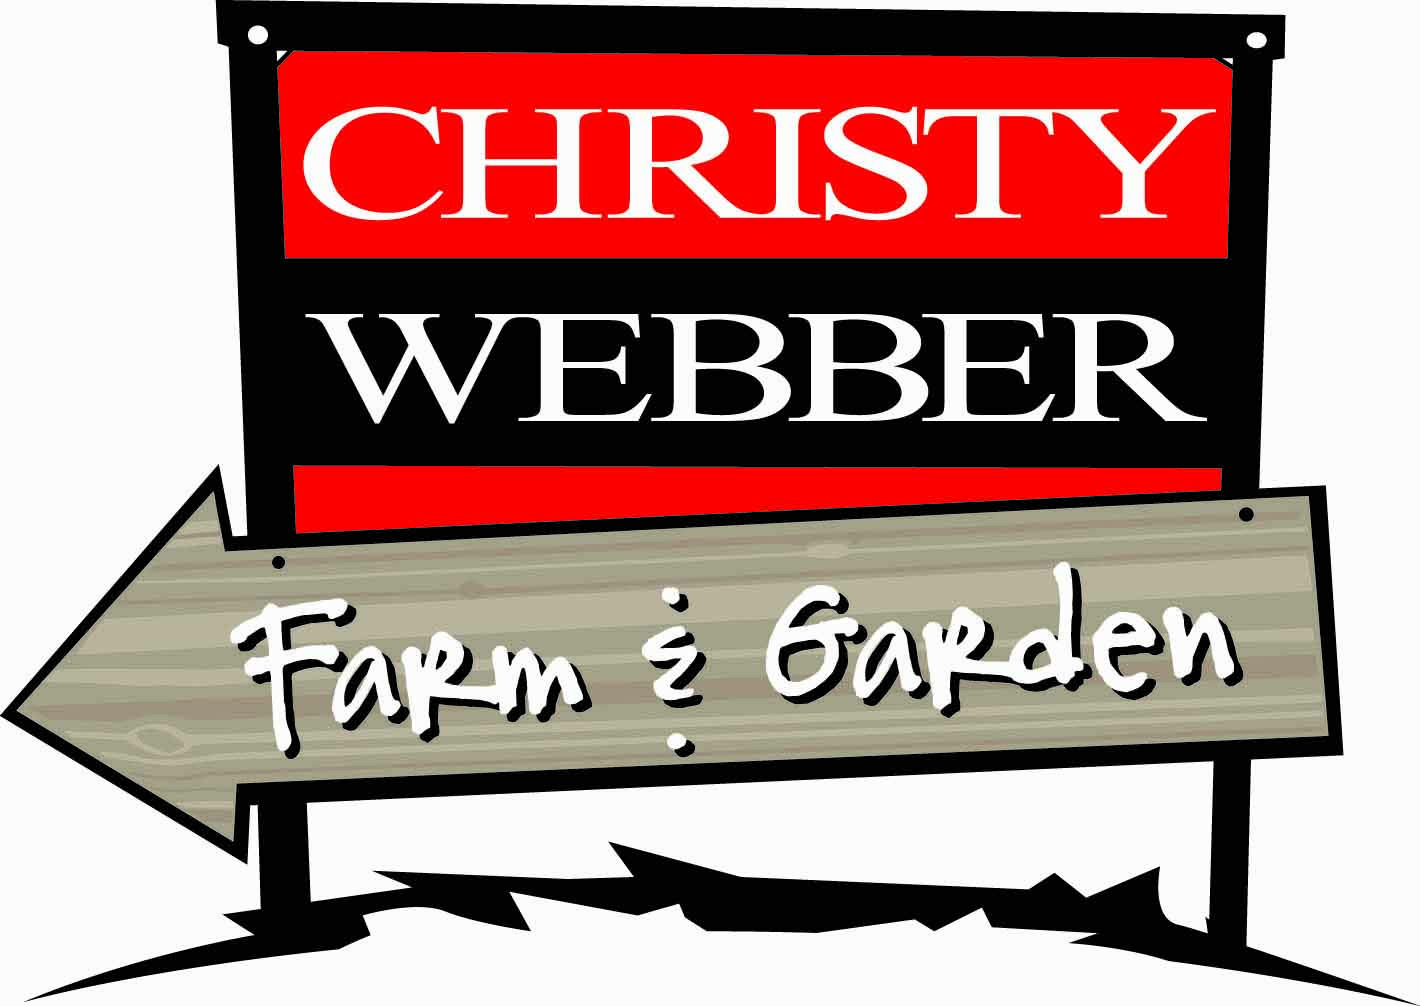 Christy Webber Farm & Garden